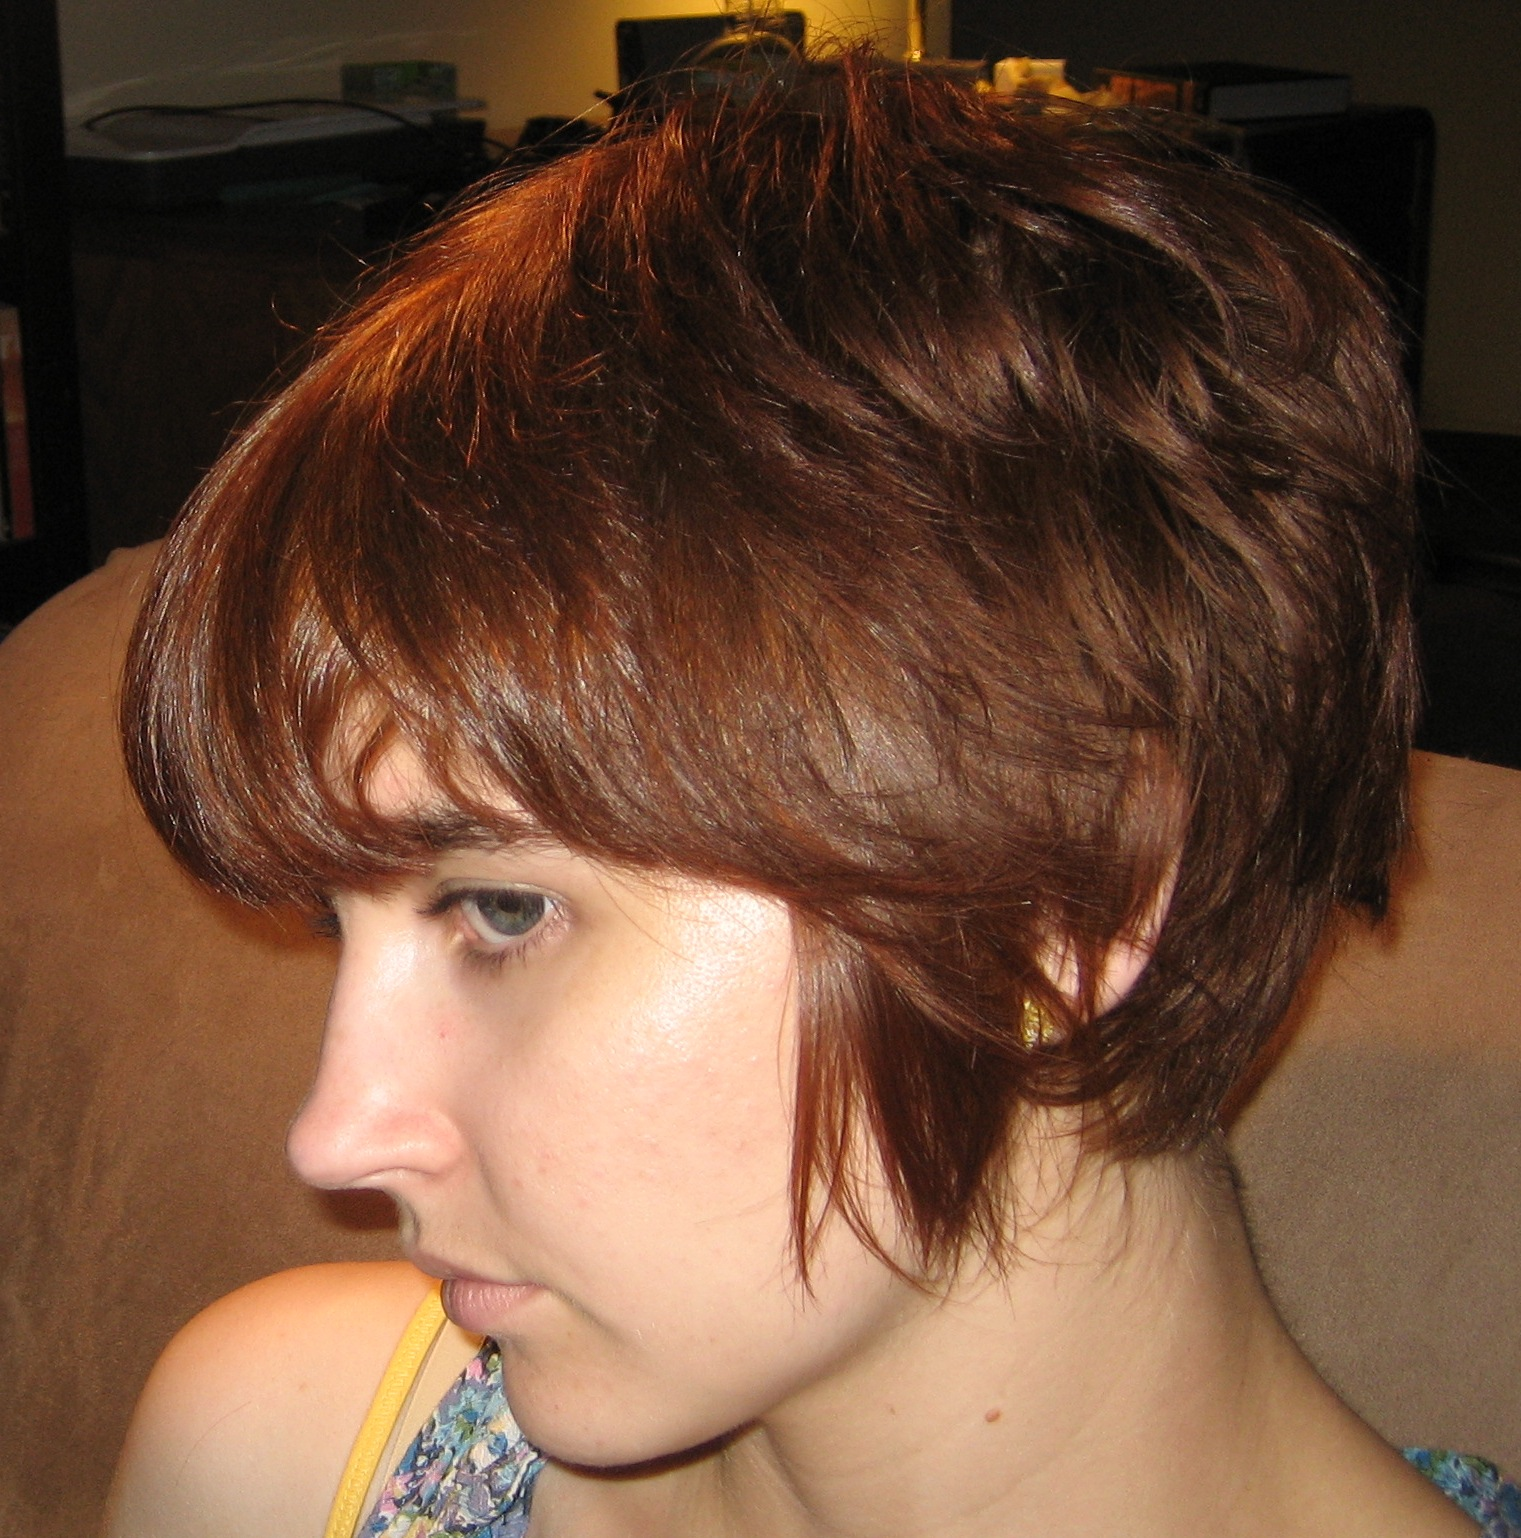 Stupendous Absolutely Hating A Style Hair 8 Wonderful Hairstyles For Short Hairstyles Gunalazisus